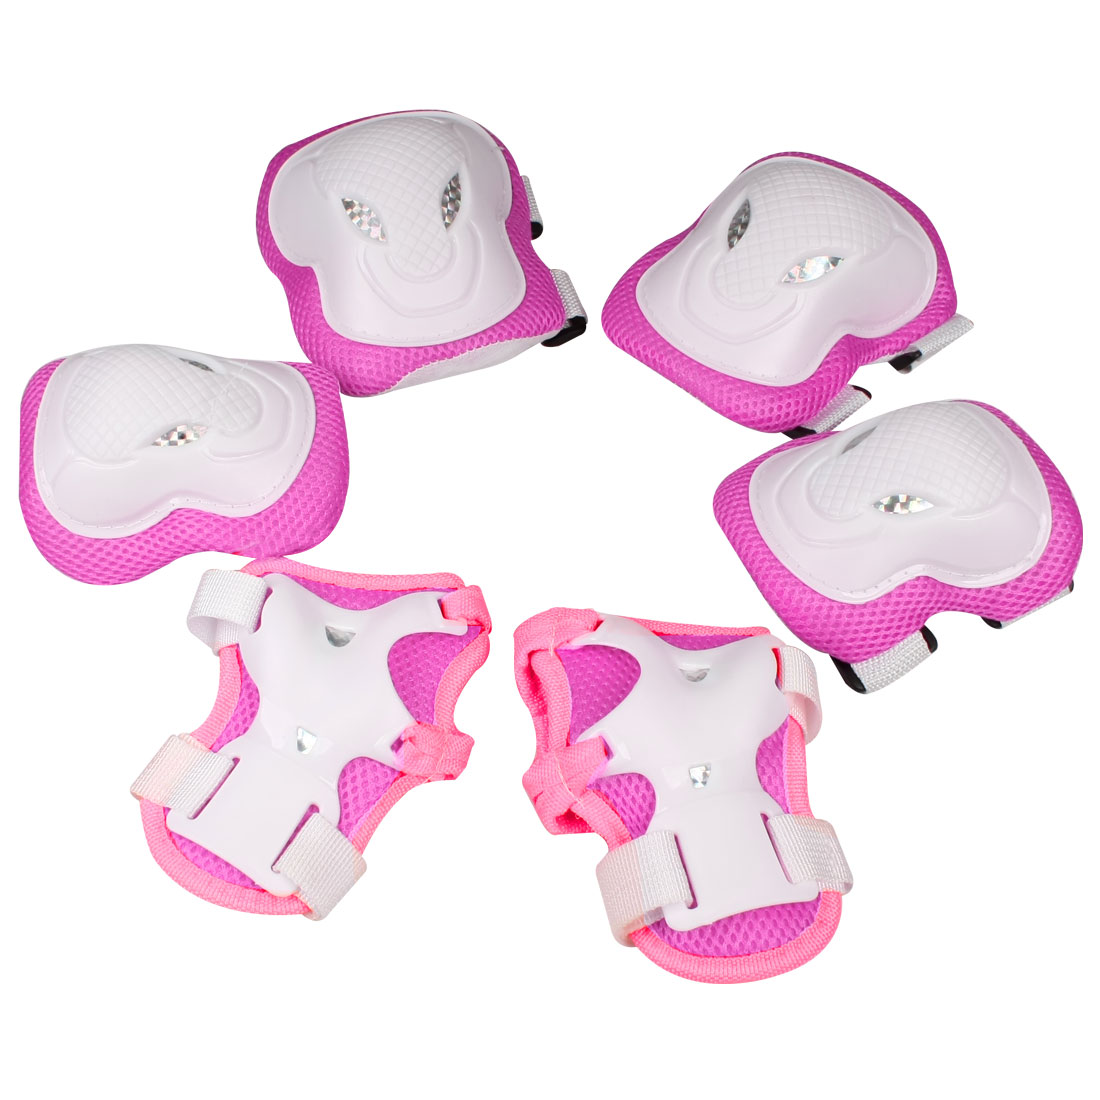 Fuchsia White Cow Head Design Palm Knee Elbow Pads Support Protector for Adult